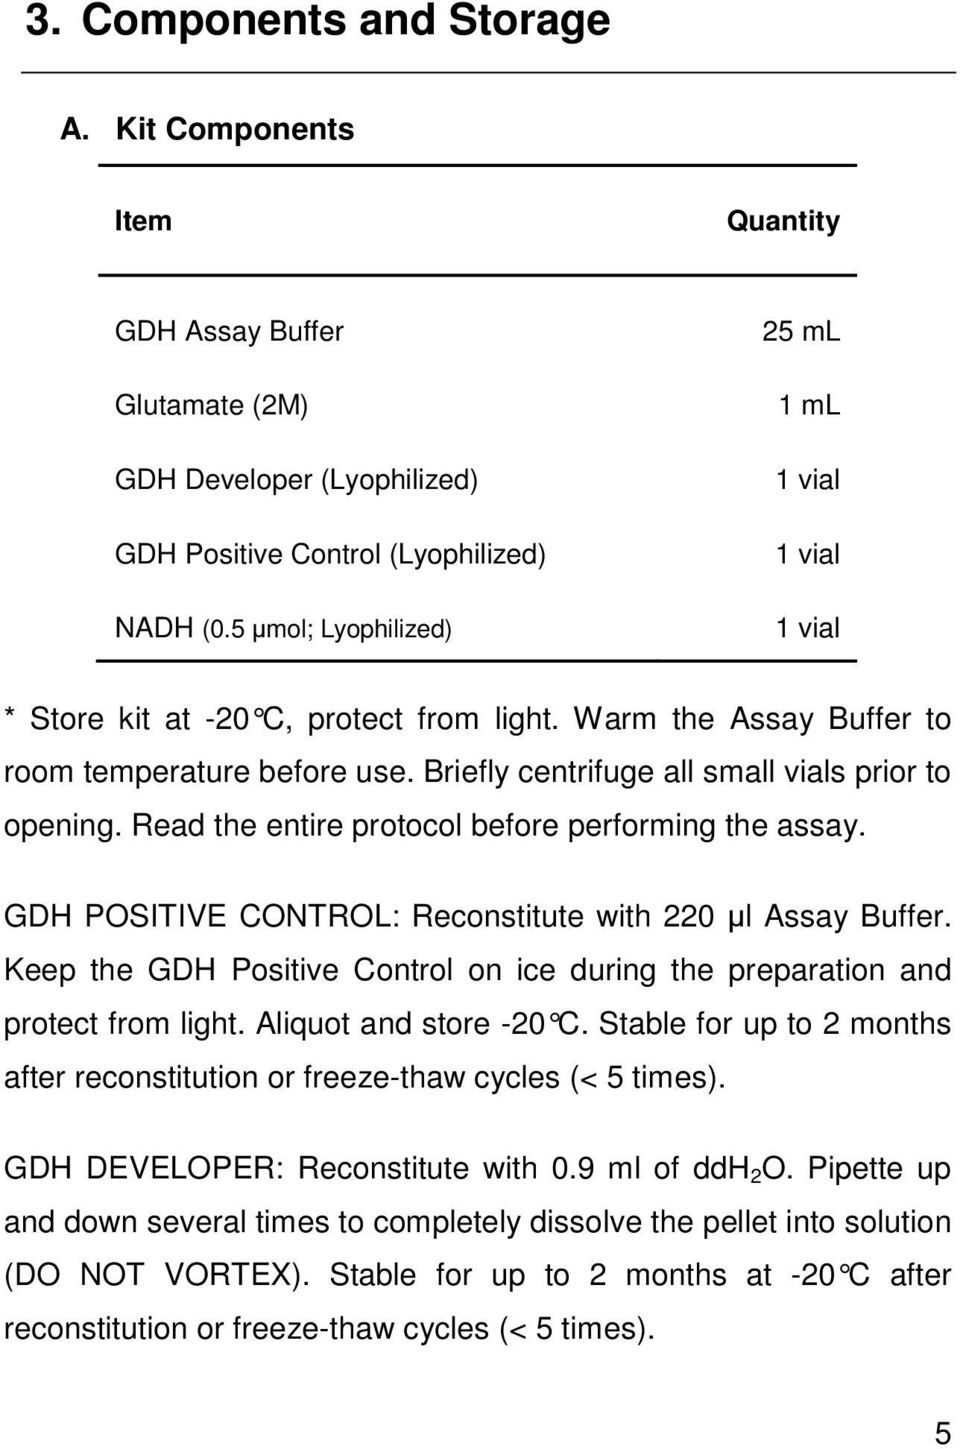 Briefly centrifuge all small vials prior to opening. Read the entire protocol before performing the assay. GDH POSITIVE CONTROL: Reconstitute with 220 µl Assay Buffer.